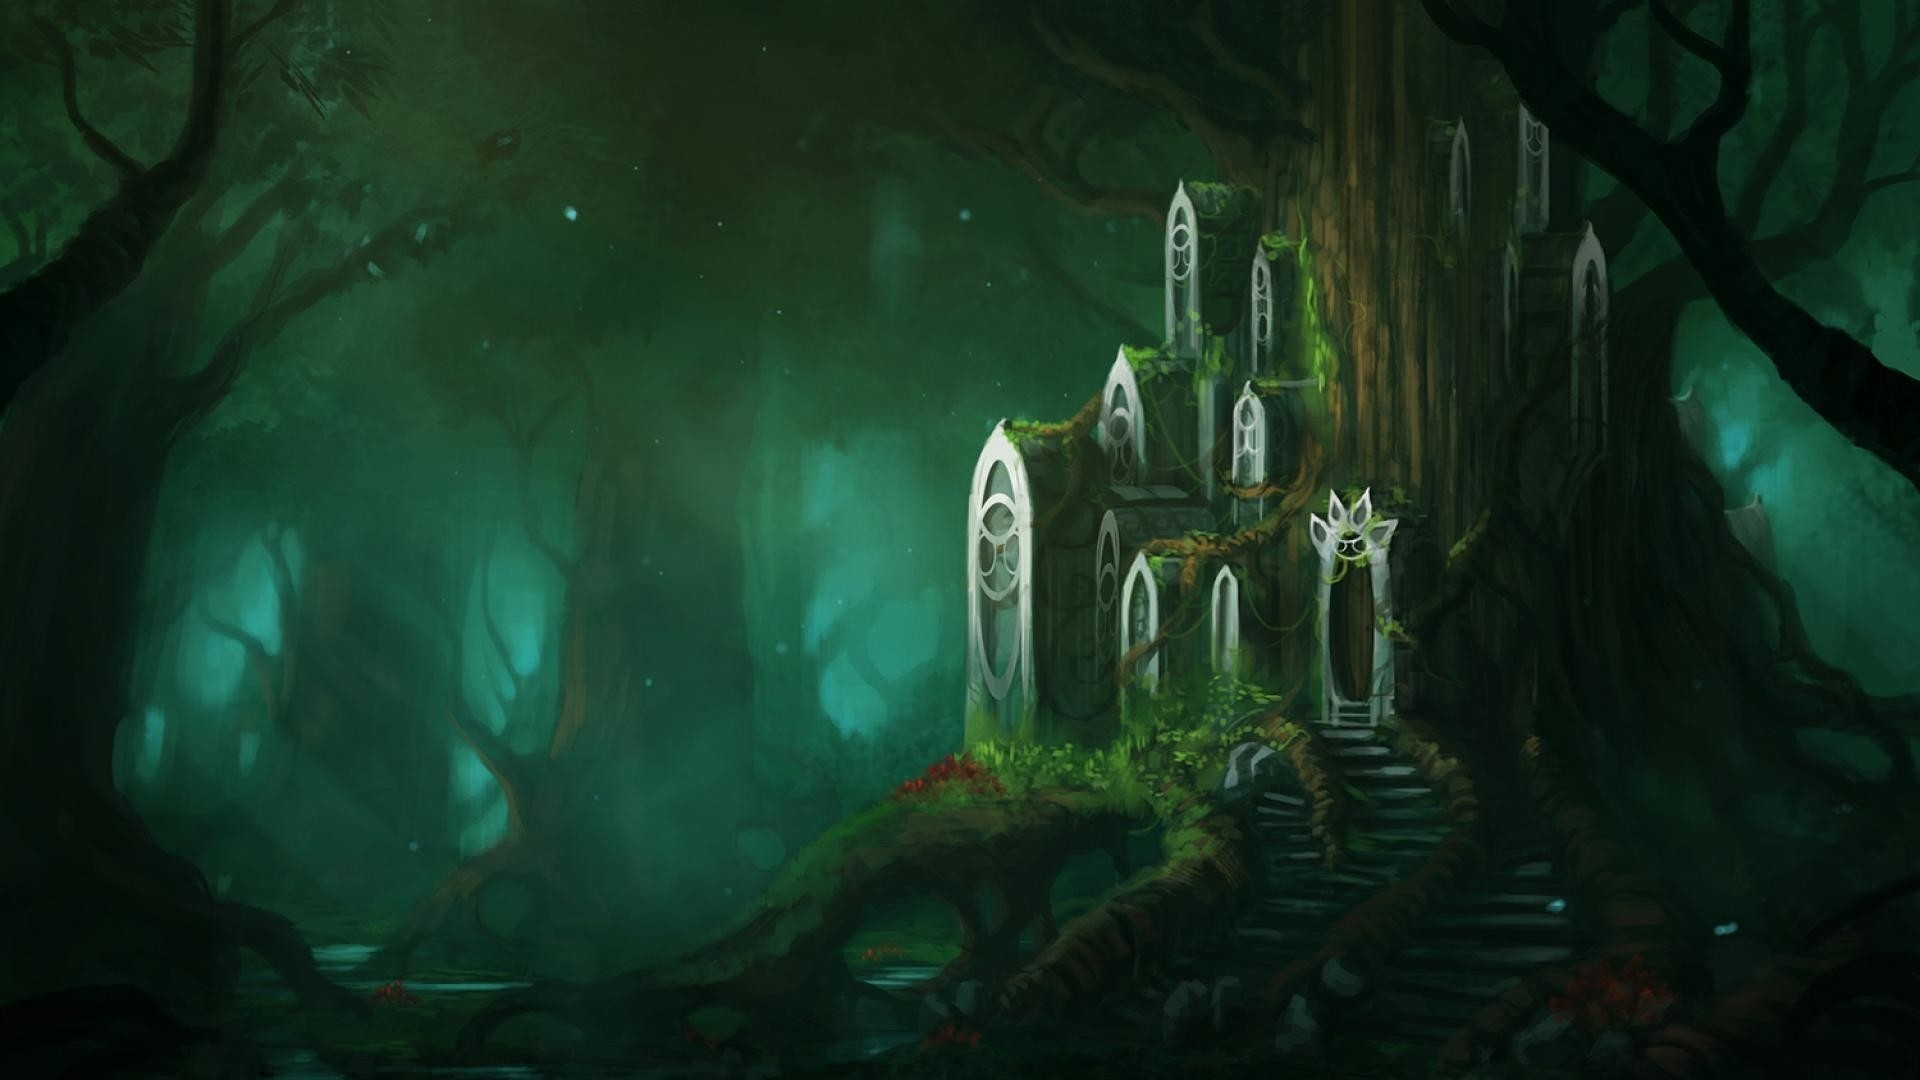 fantasy forest wallpaper hd (78+ images)